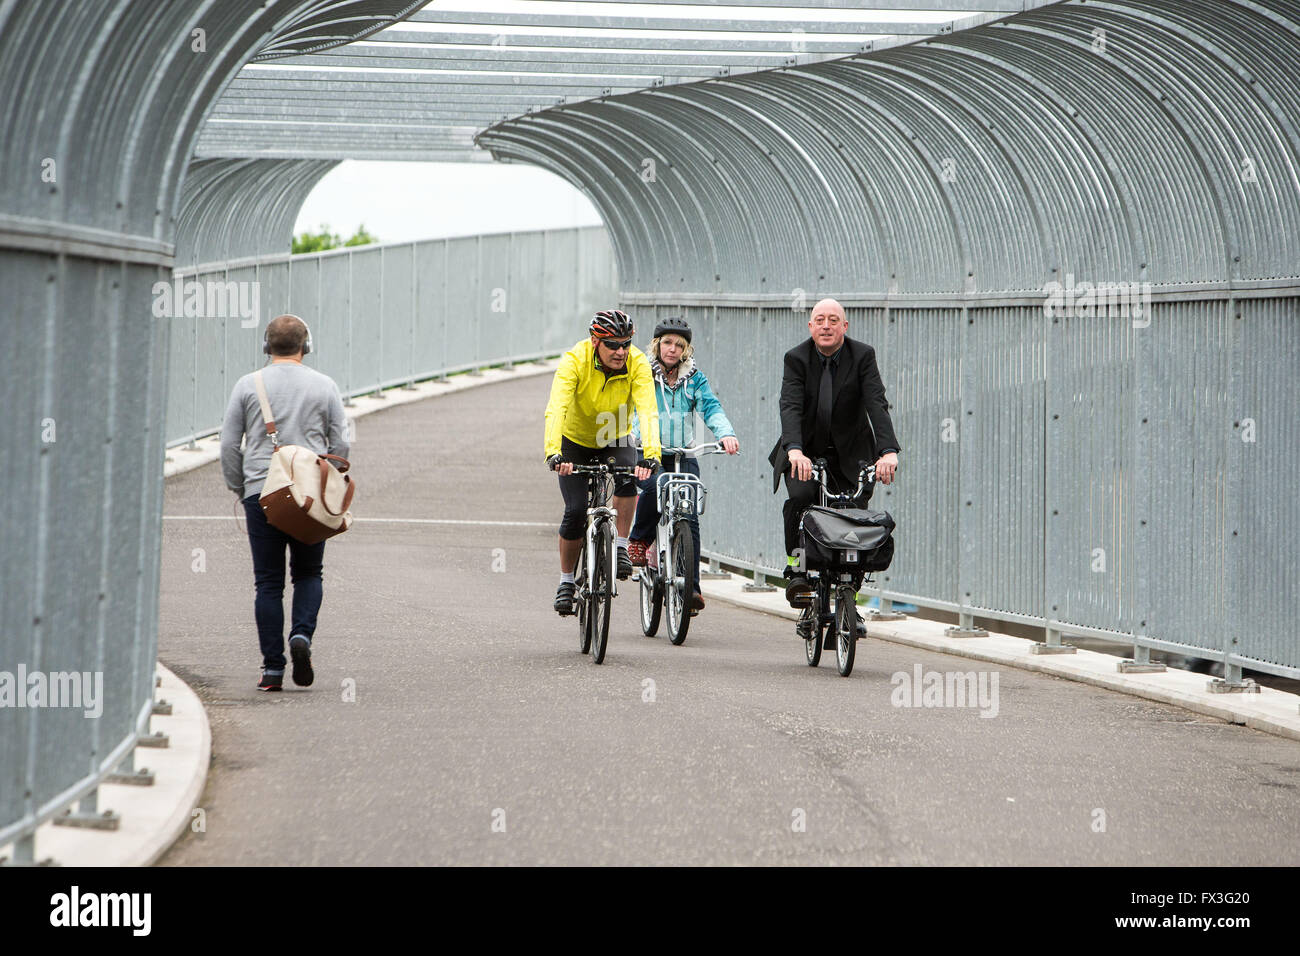 Cyclists commuting on cycle paths - Stock Image